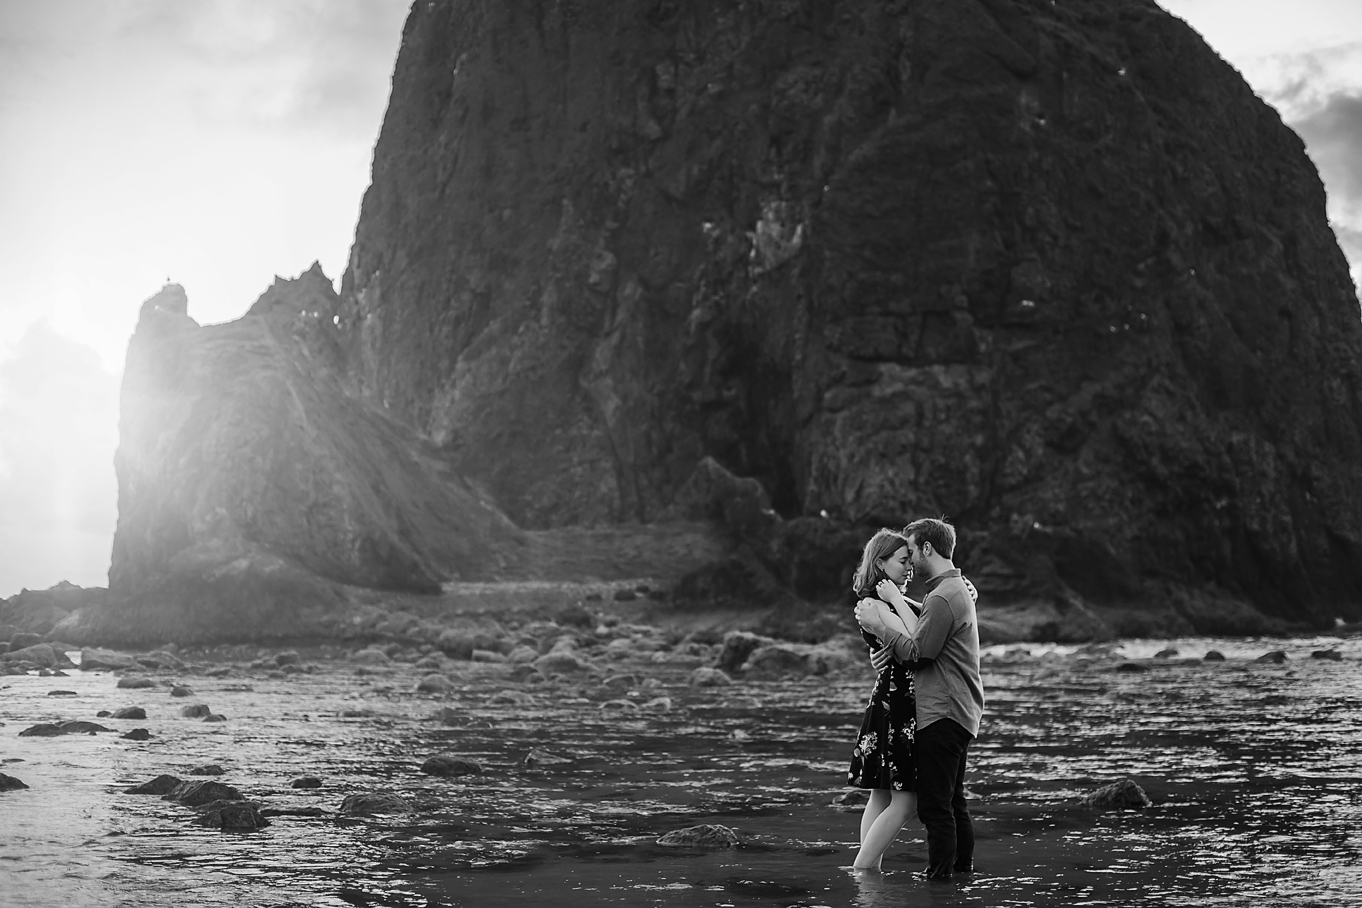 Amanda + Matt - Oregon Coast Engagement Photographer - Destination Elopement Photographer - Emily & Co. Photography (13).jpg